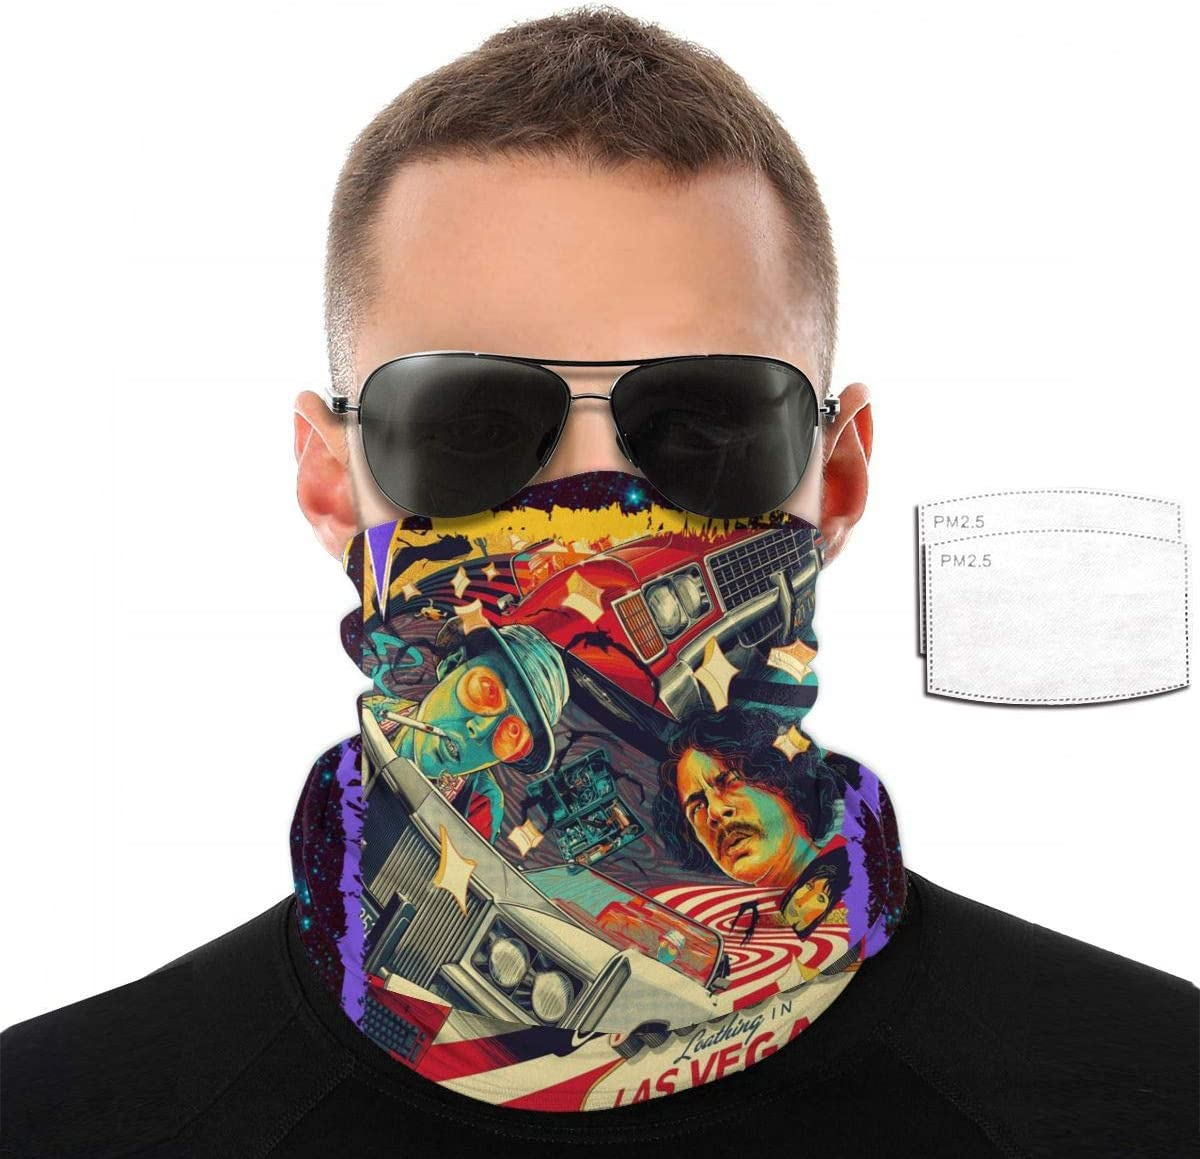 LisaCrocker Neck Gaiter Balaclava Scarf Fear and Loathing in Las Vegas Cartoon Bandanas for Outdoors with 2 Filter